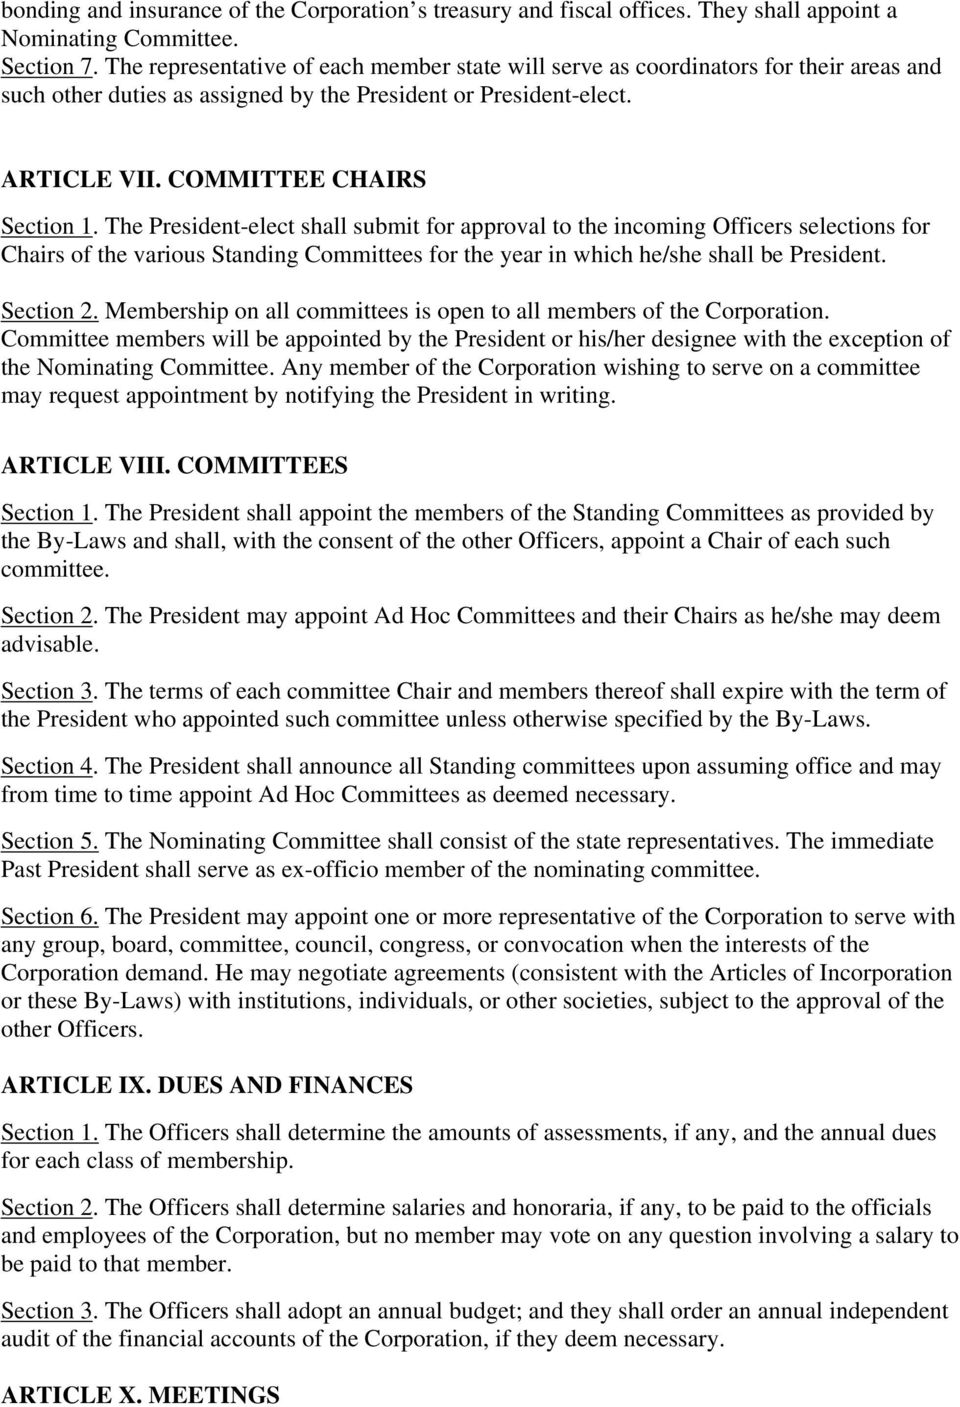 The President-elect shall submit for approval to the incoming Officers selections for Chairs of the various Standing Committees for the year in which he/she shall be President. Section 2.